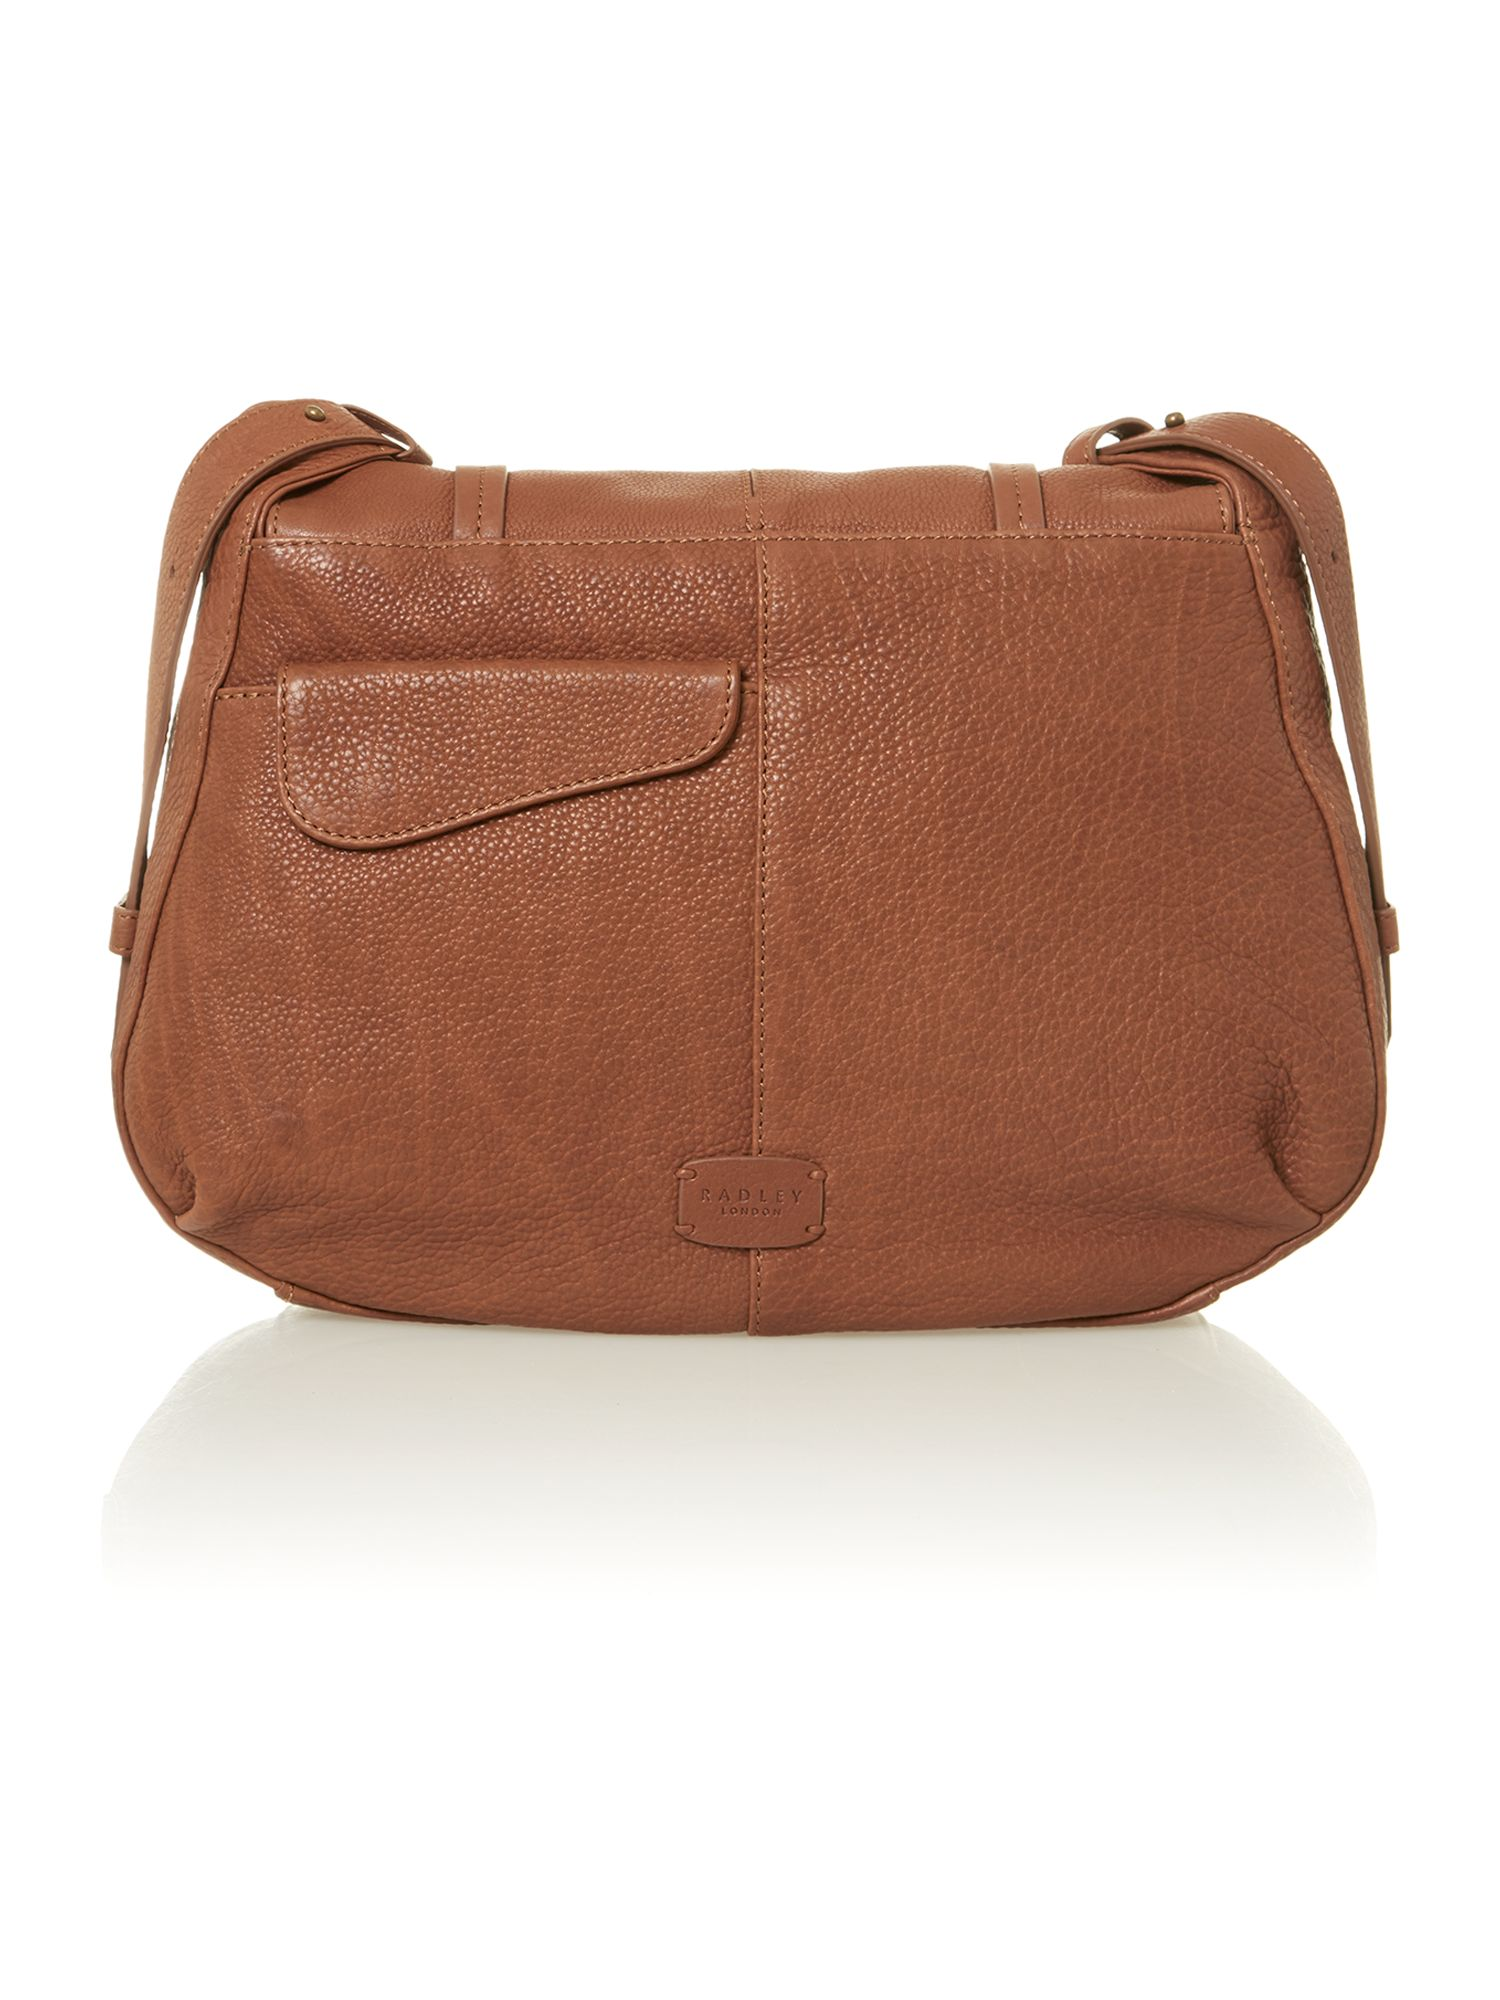 Grosvenor tan shoulder bag